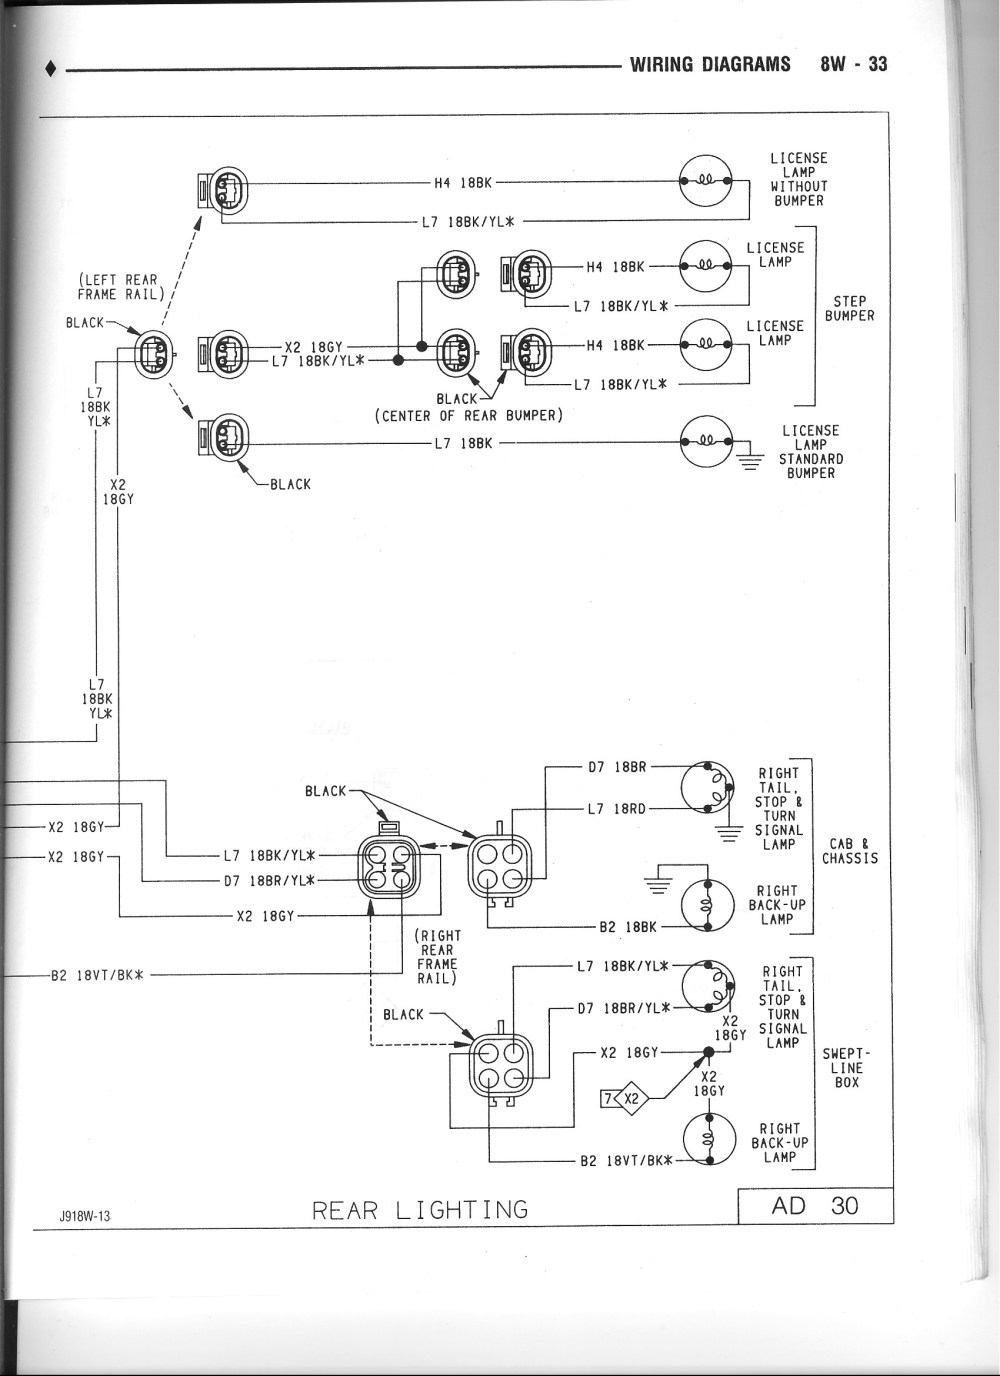 medium resolution of 1993 dodge truck wiring diagram wiring diagram option 1993 dodge wiring diagram wiring diagram fascinating 1993